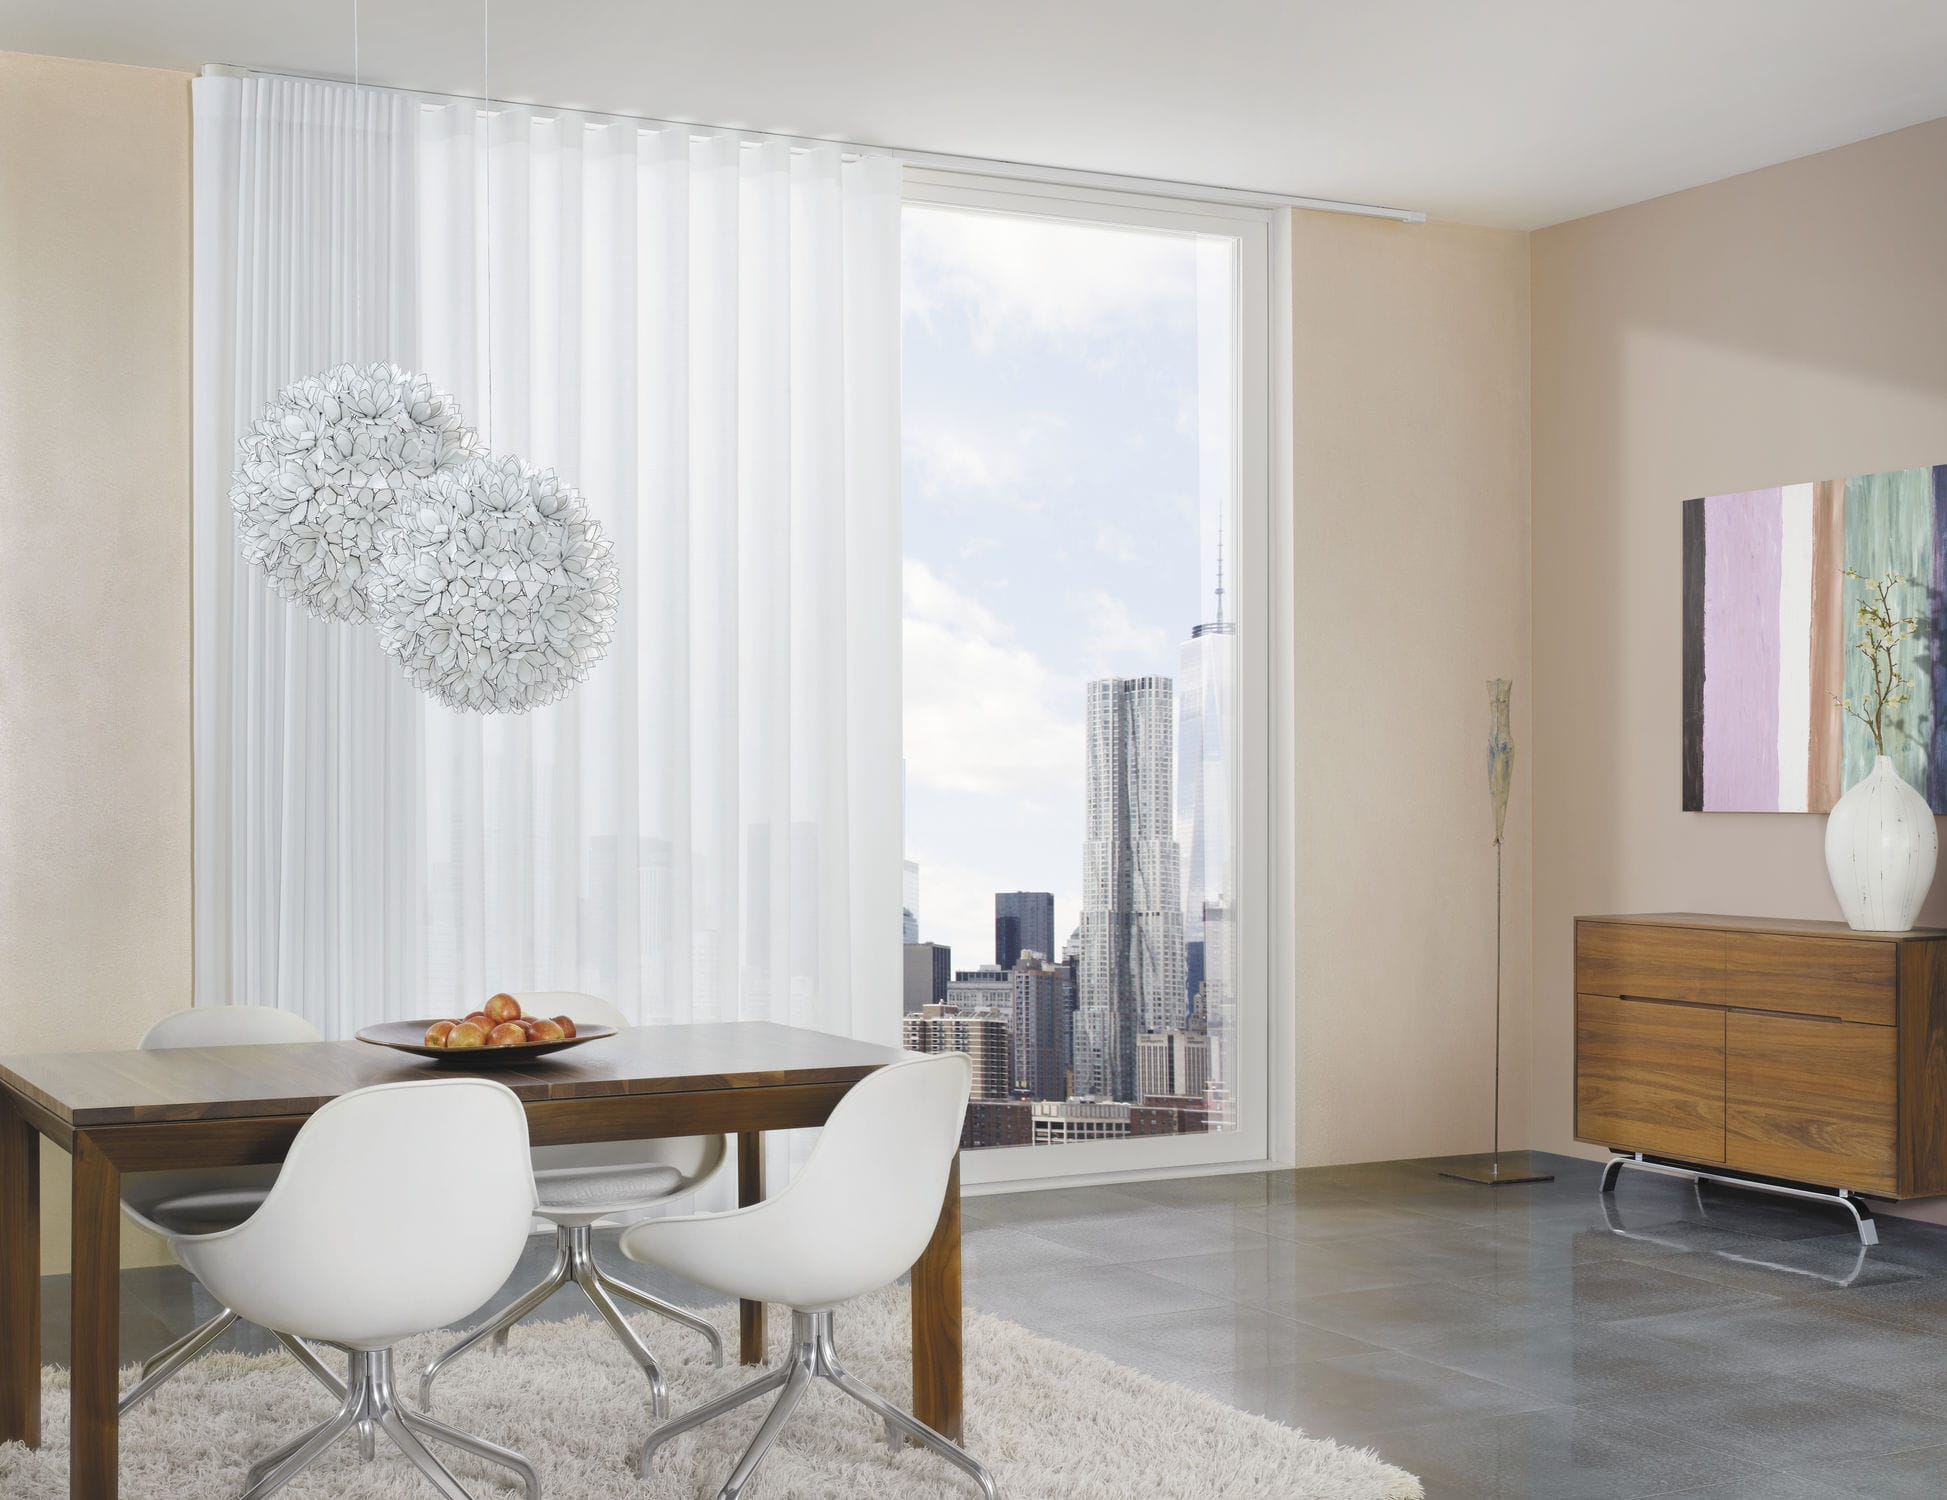 curtain living motorized window suppliers close showroom the motors com and sheer alibaba drapes manufacturers open at for curtains